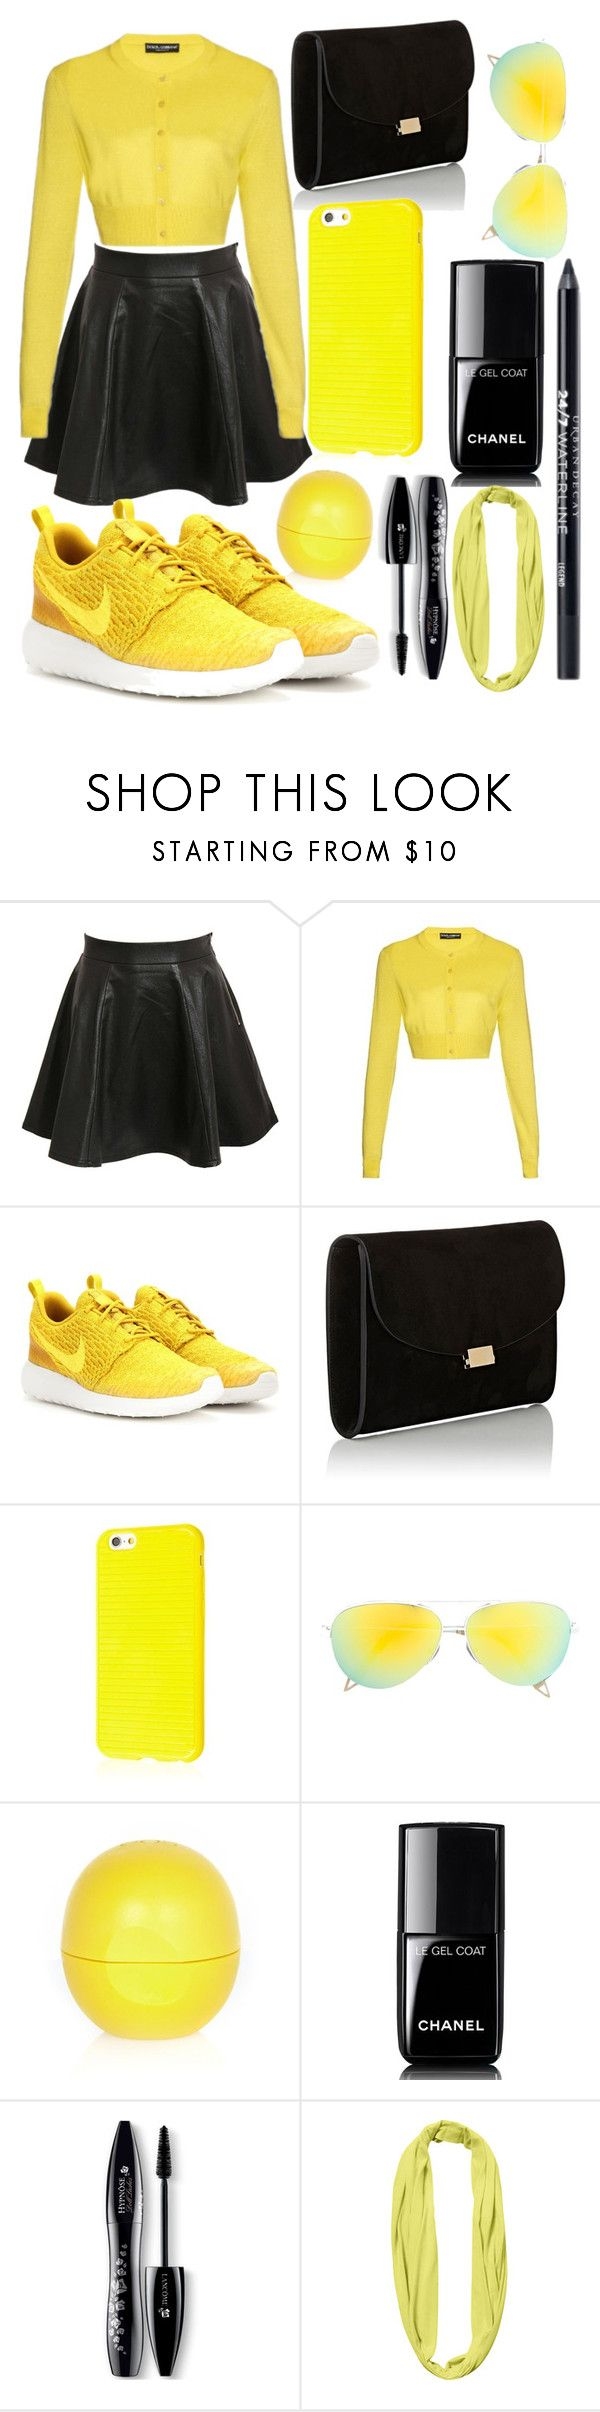 """black and yellow"" by cintia2019 ❤ liked on Polyvore featuring Pilot, Dolce&Gabbana, NIKE, Mansur Gavriel, Victoria Beckham, River Island, Chanel, Lancôme, BUFF and Urban Decay"